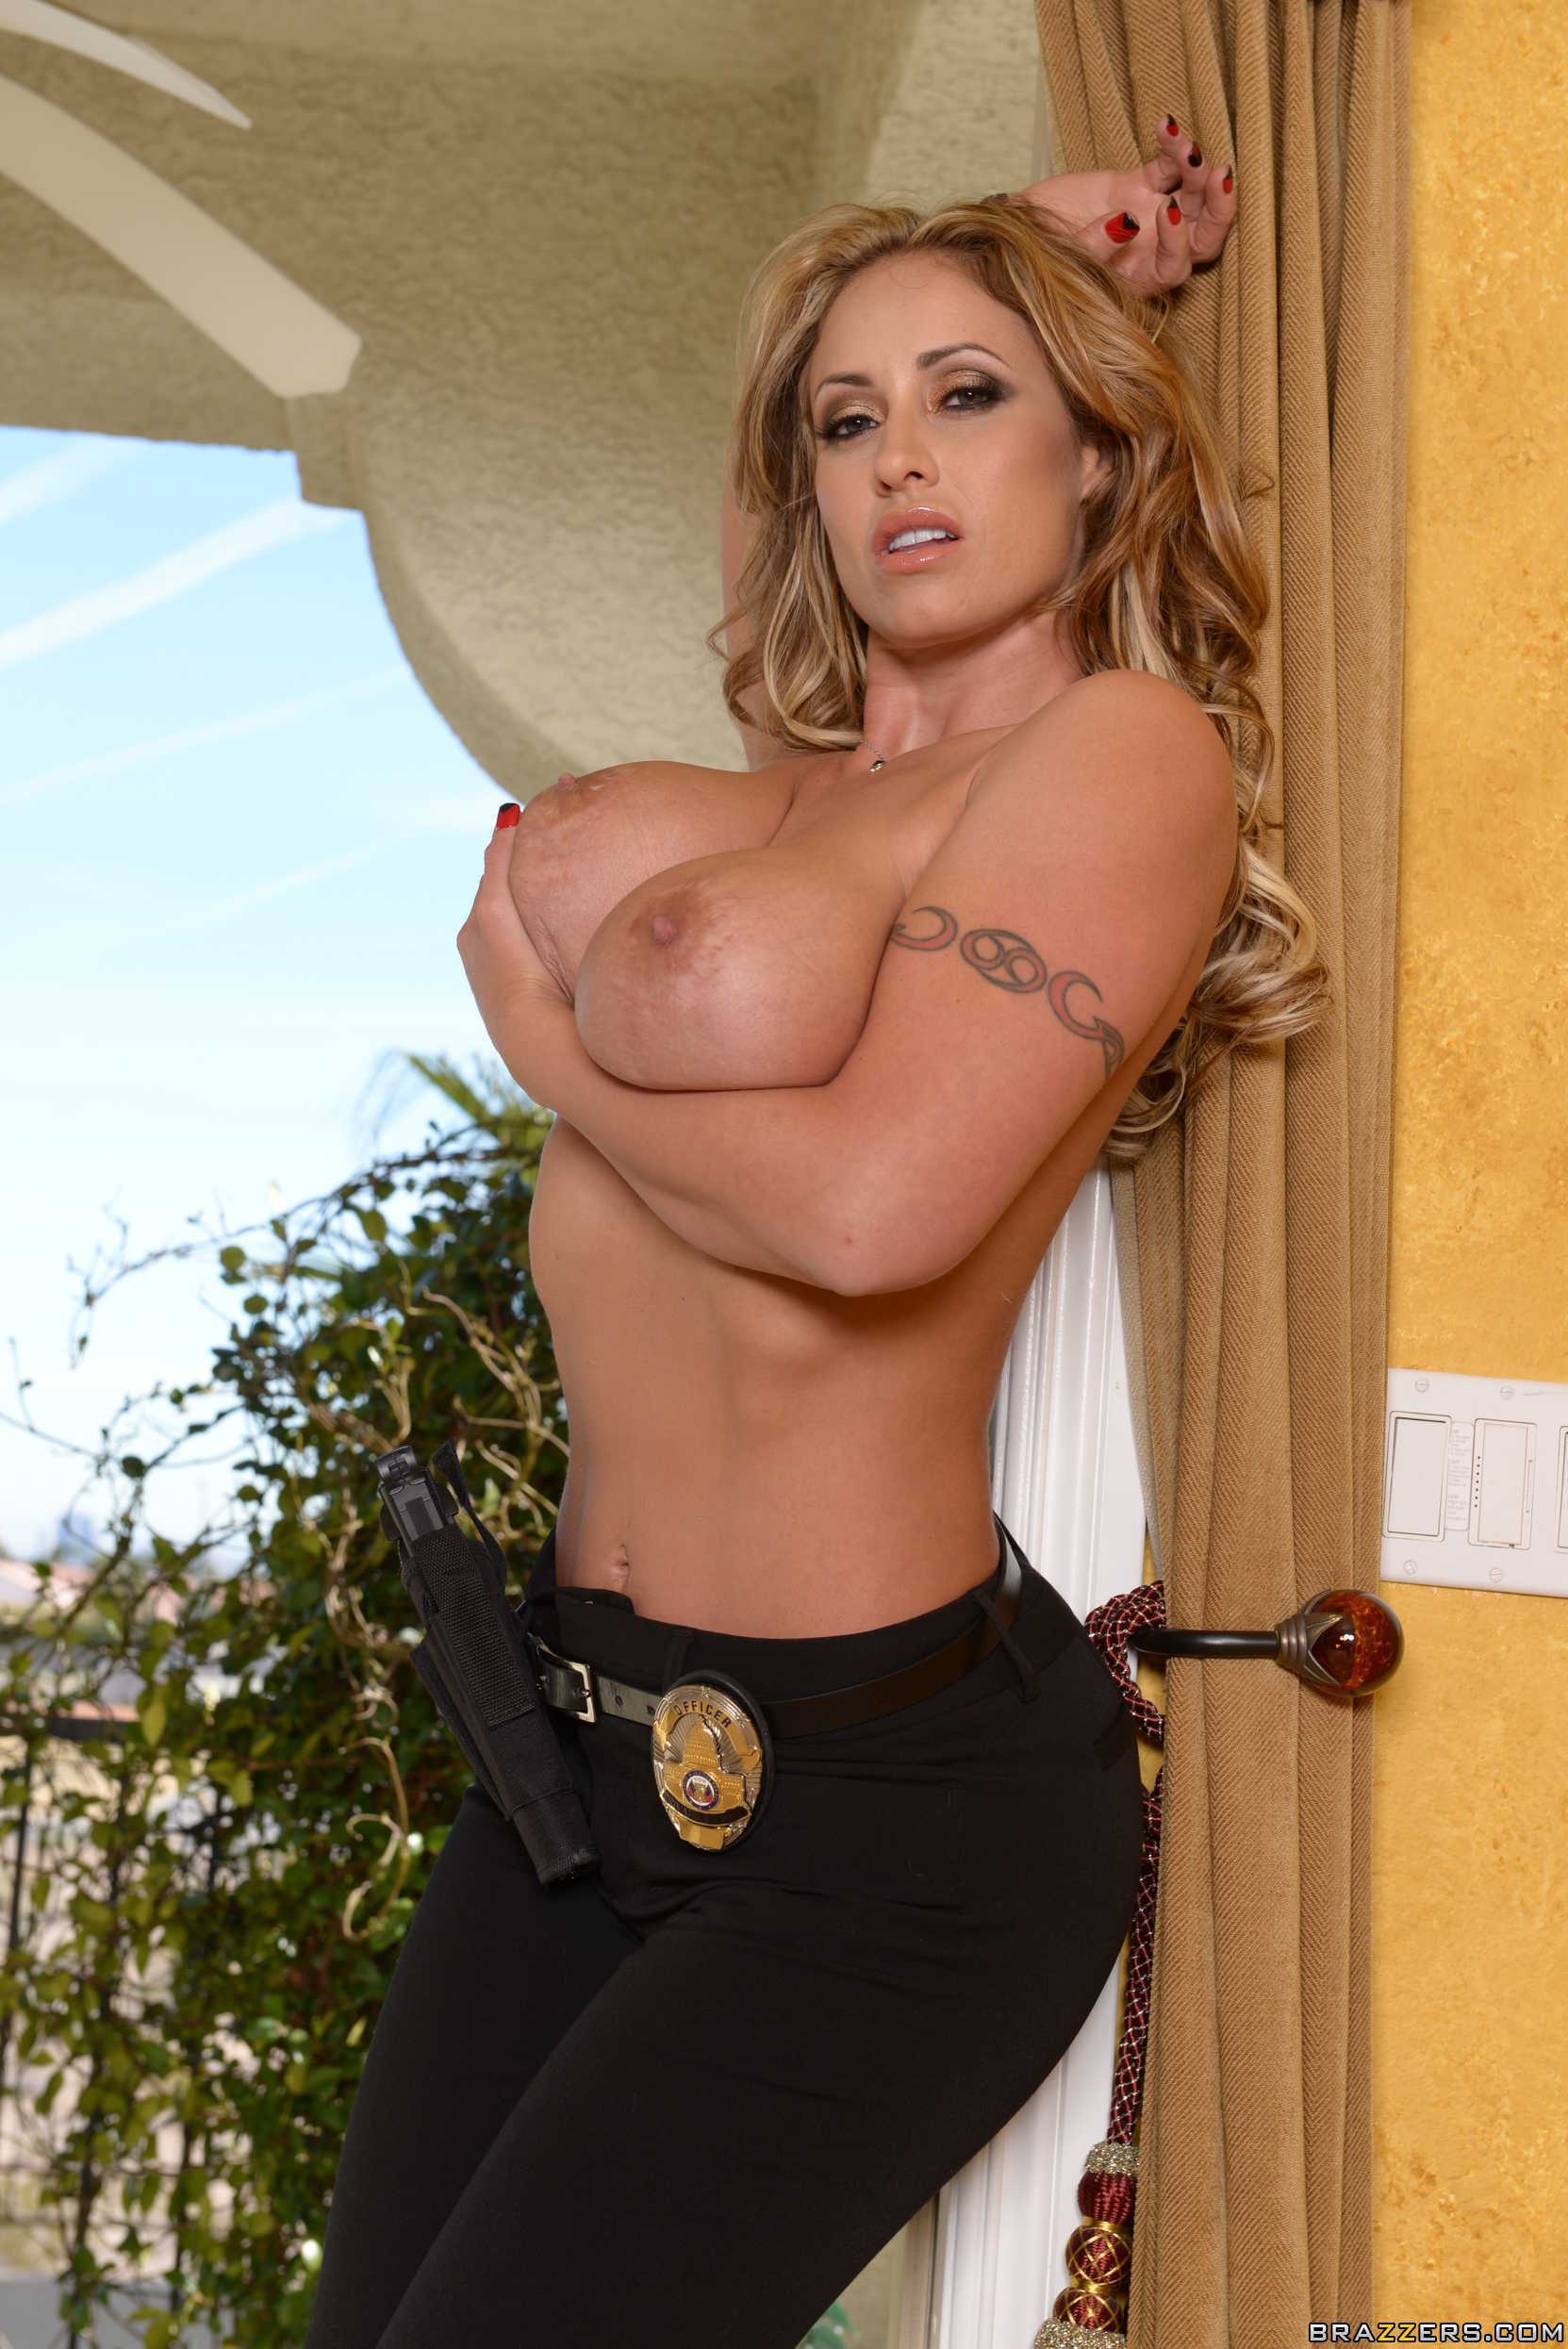 Eva notty busty cop gets screwed in the kitchen after spying